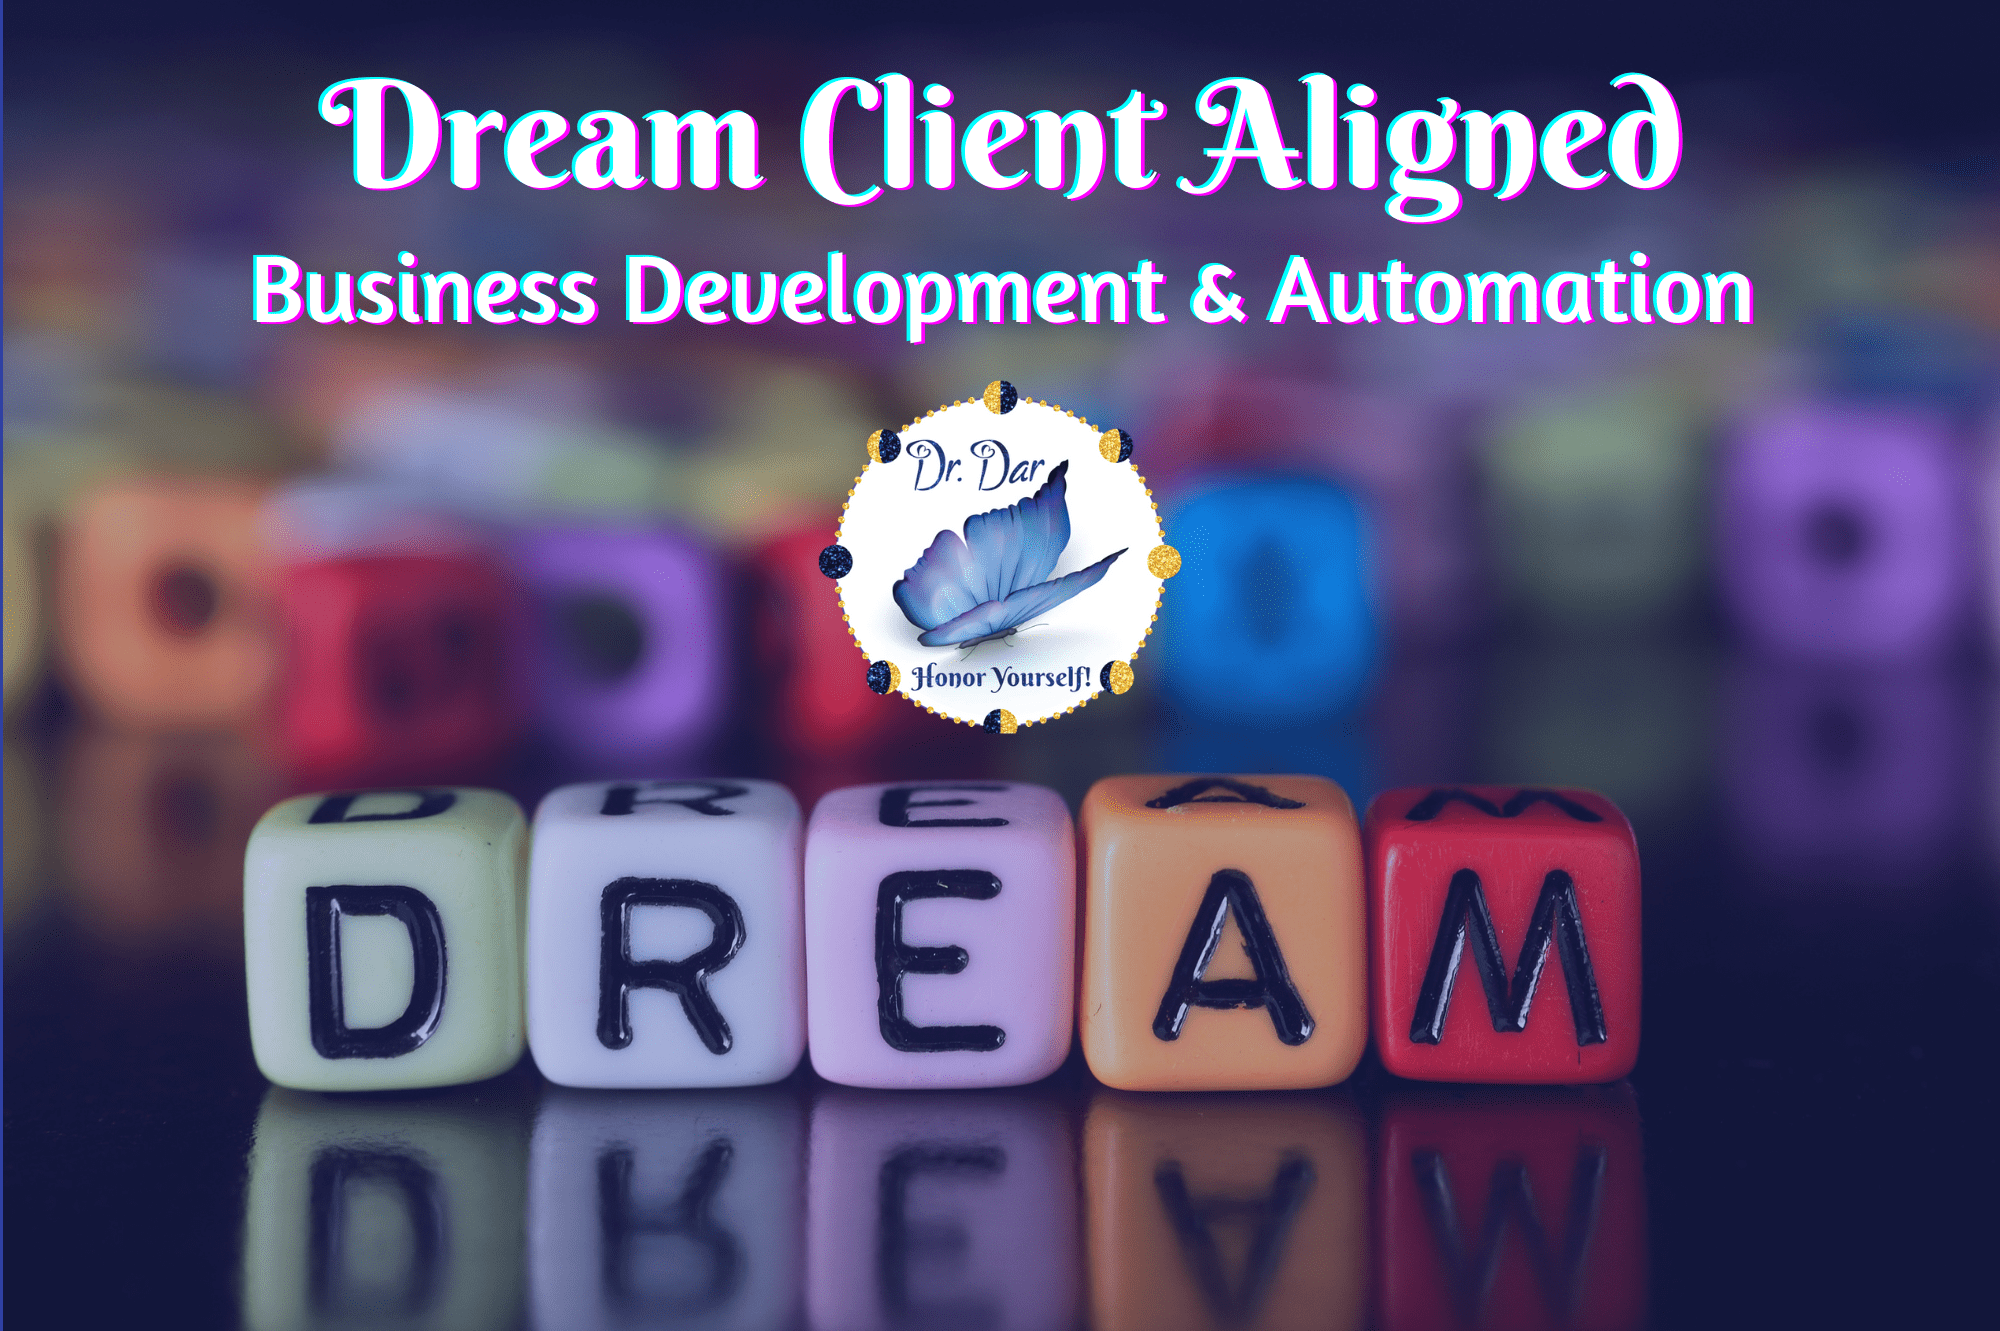 Dream Client Aligned - Business Development - Dr. Dar Hawks